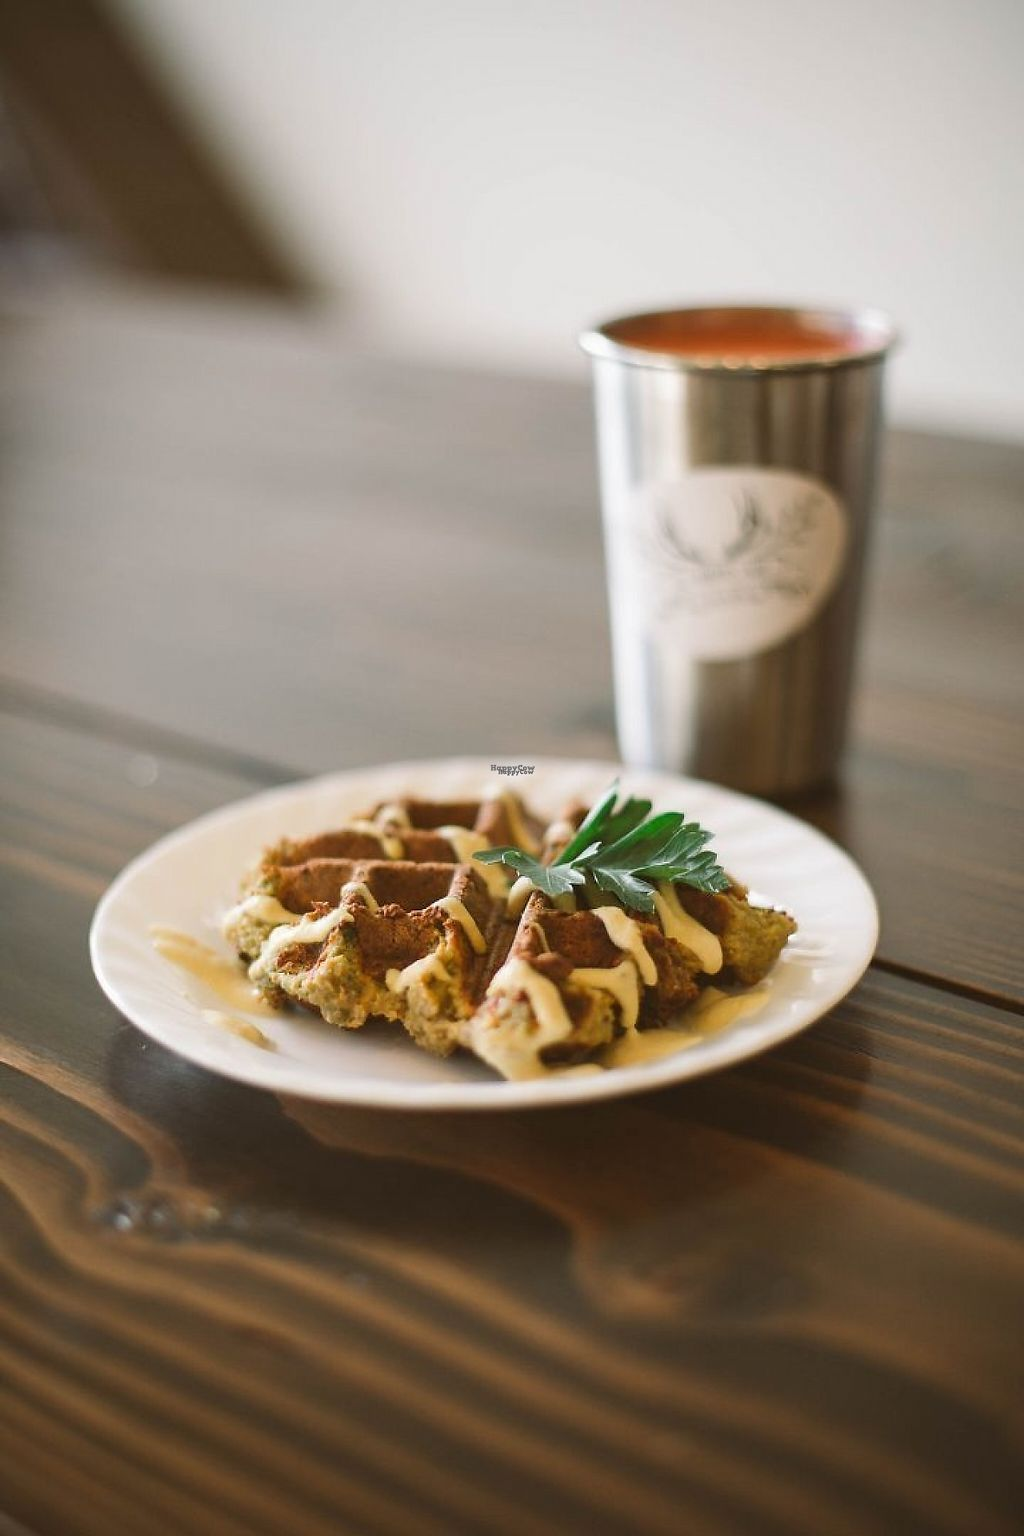 """Photo of The Hunter's Wife Health Bar  by <a href=""""/members/profile/TandiCanterburyRolen"""">TandiCanterburyRolen</a> <br/>Allergy free waffles, weekly lunch specials, organic juice, smoothies and more! <br/> November 14, 2016  - <a href='/contact/abuse/image/82754/190176'>Report</a>"""